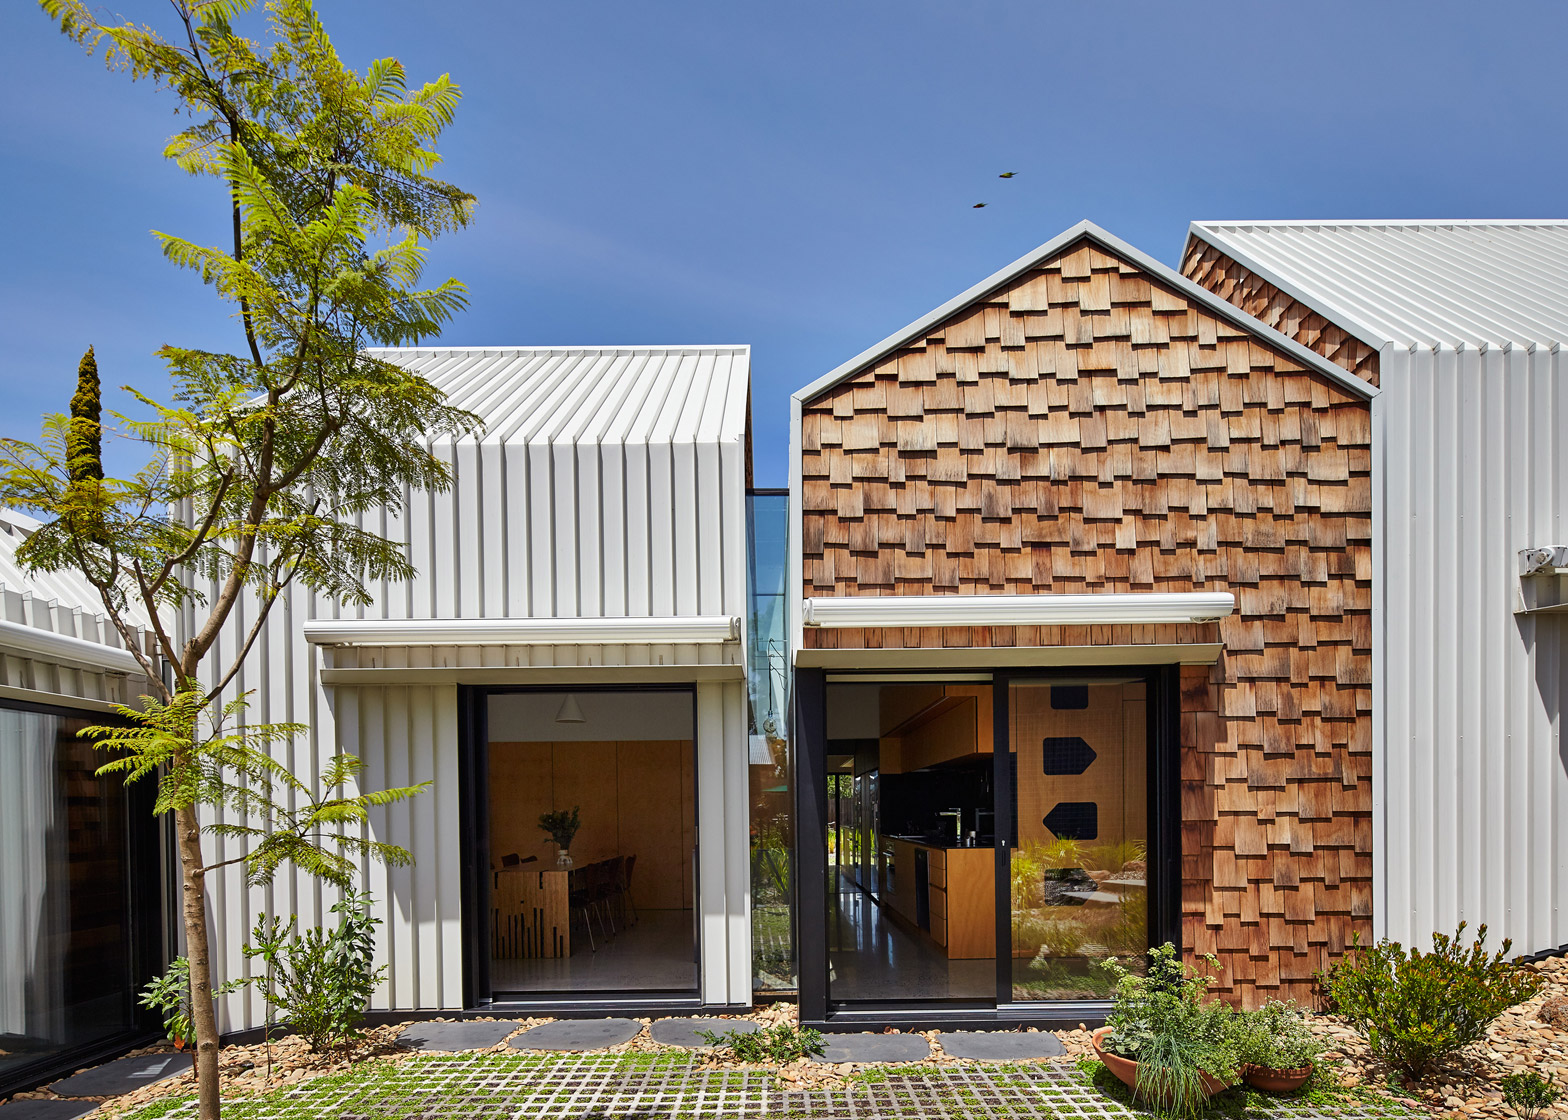 Tower House by Andrew Maynard Architects